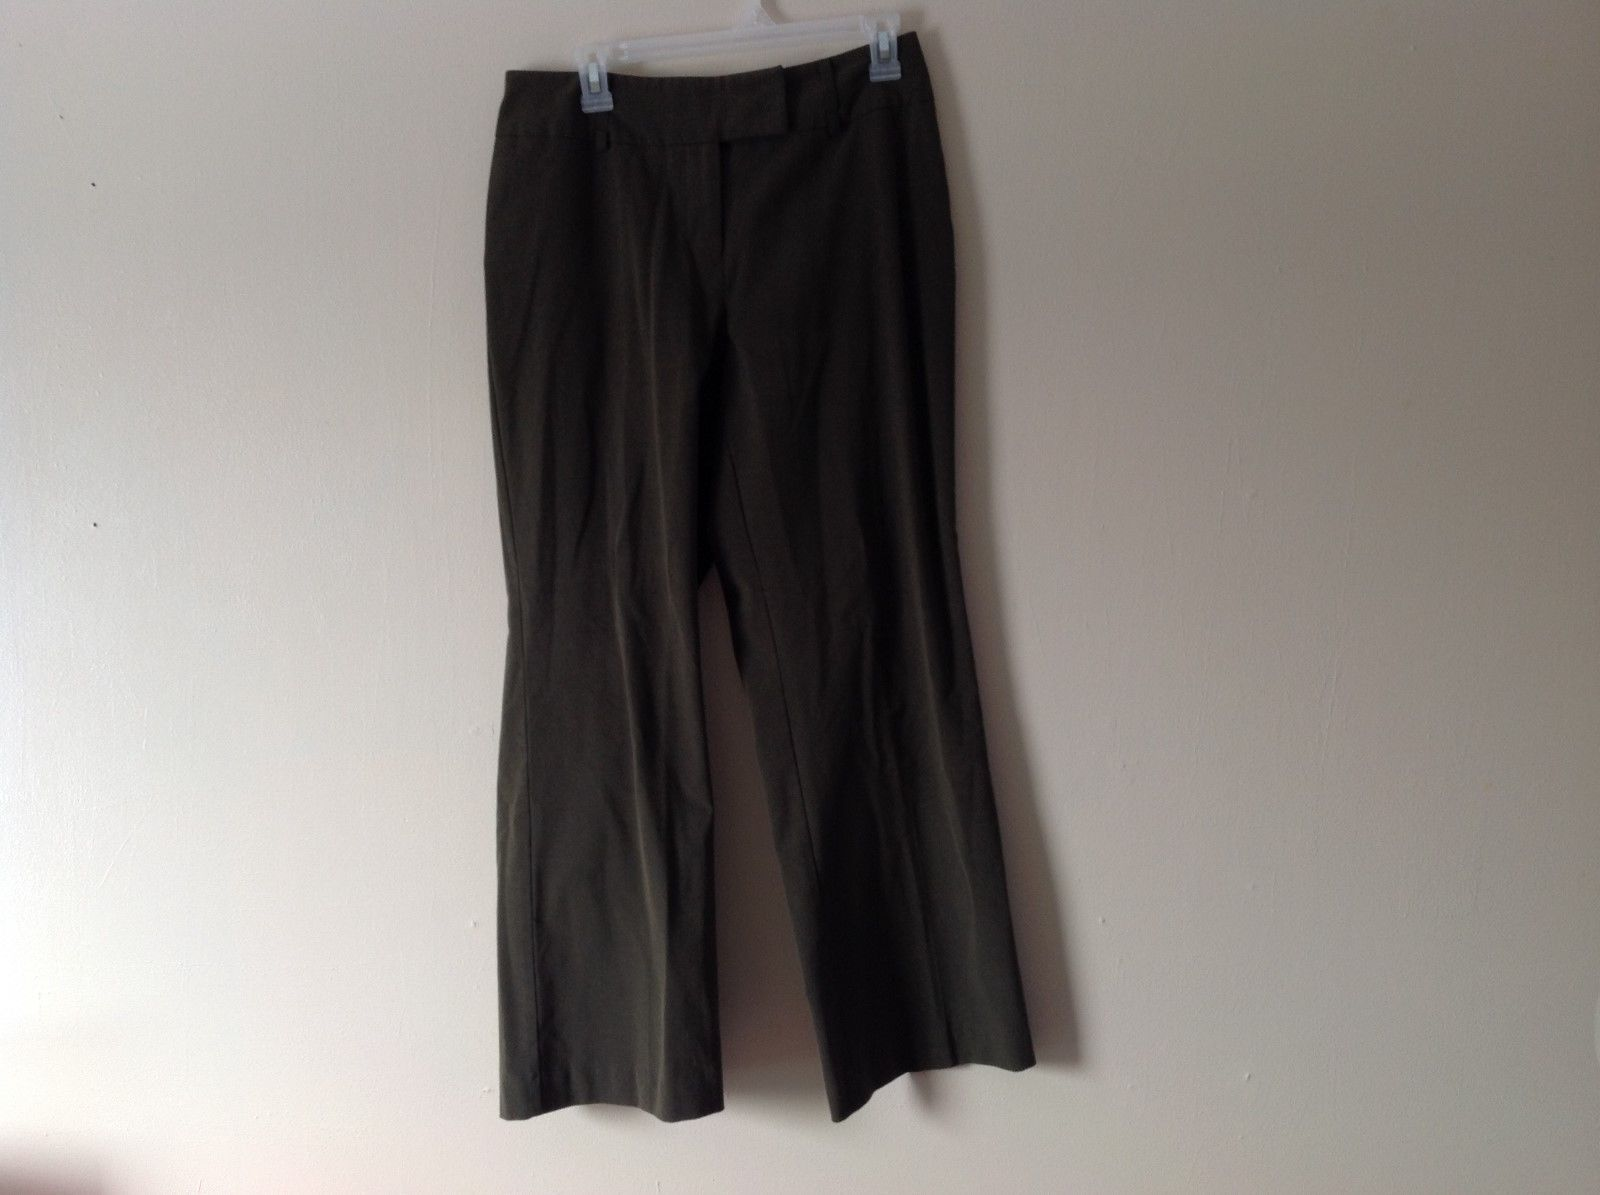 Women's dark olive green slacks